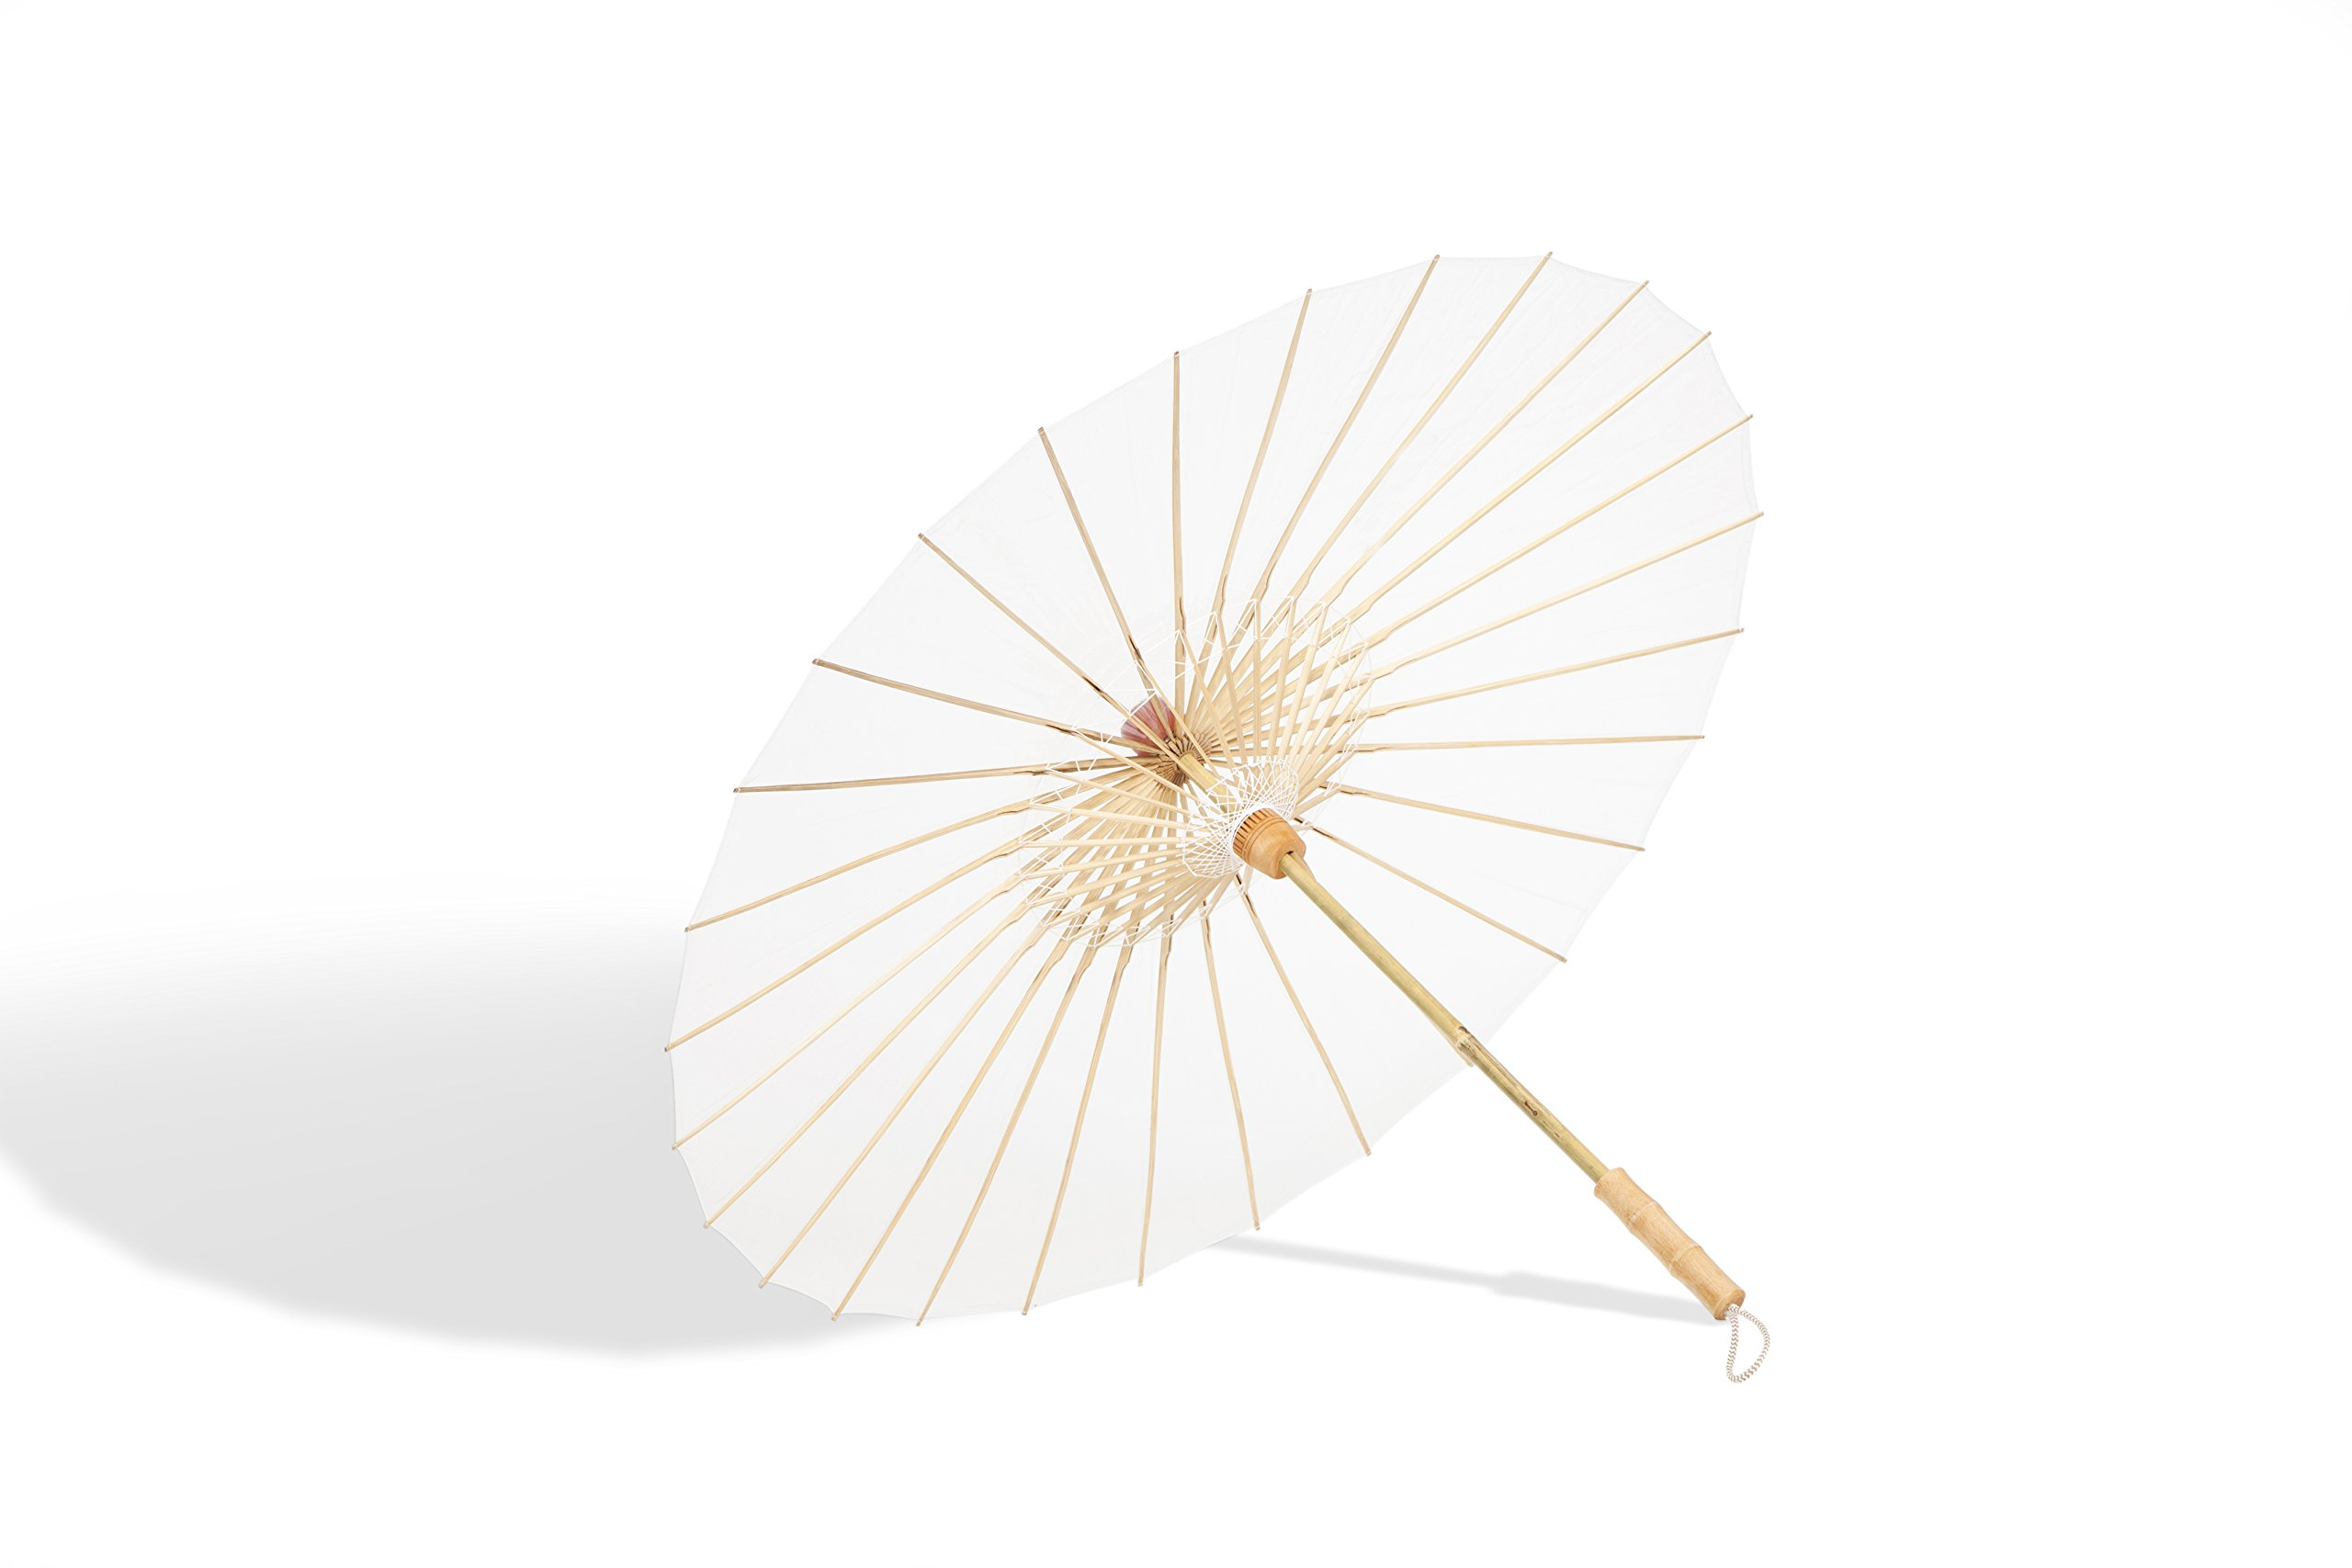 BRELLI Clear Umbrella, Small - This chic umbrella offers protection from the rain and sun It withstands winds up to 40 mph, all while remaining completely transparent This small umbrella comes with a custom carrying case - shades-parasols, patio-furniture, patio - 71hHCnuU4uL -